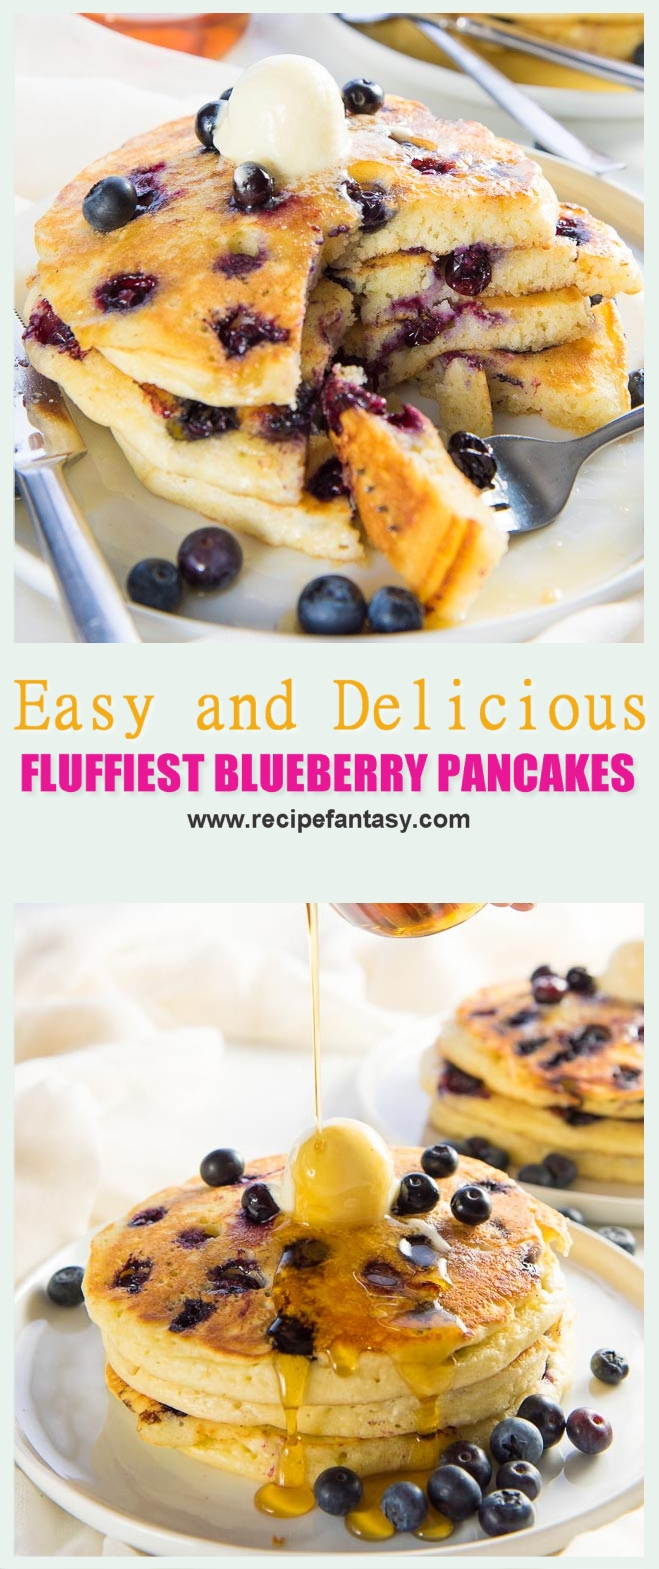 Easy and Delicious FLUFFIEST BLUEBERRY PANCAKES